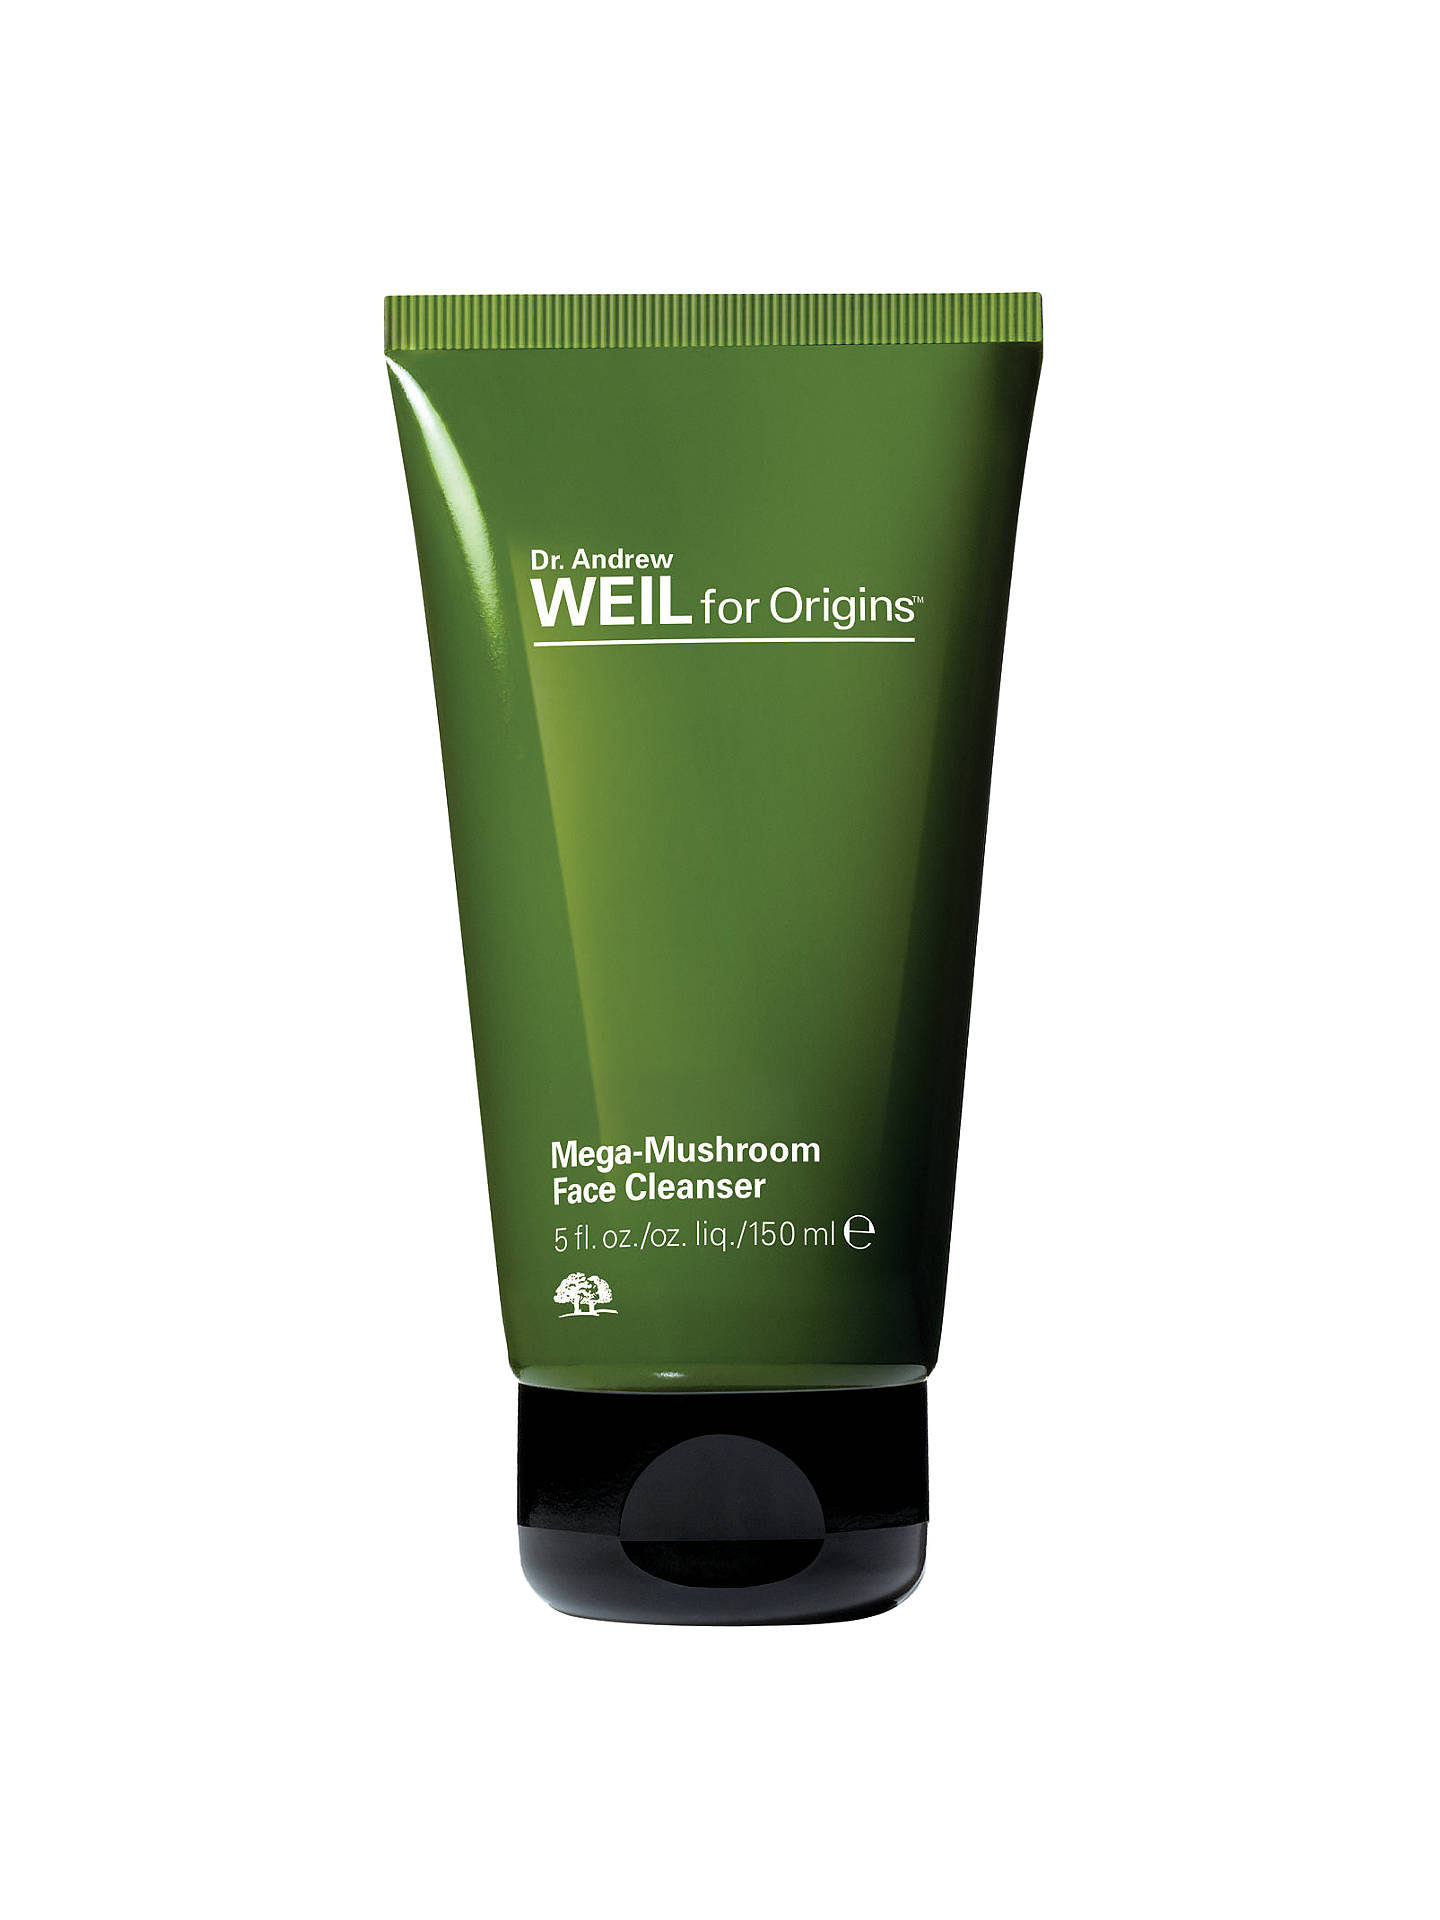 Buy Origins Mega-Mushroom Face Cleanser To Optimize Skin's Defenses, 150ml Online at johnlewis.com